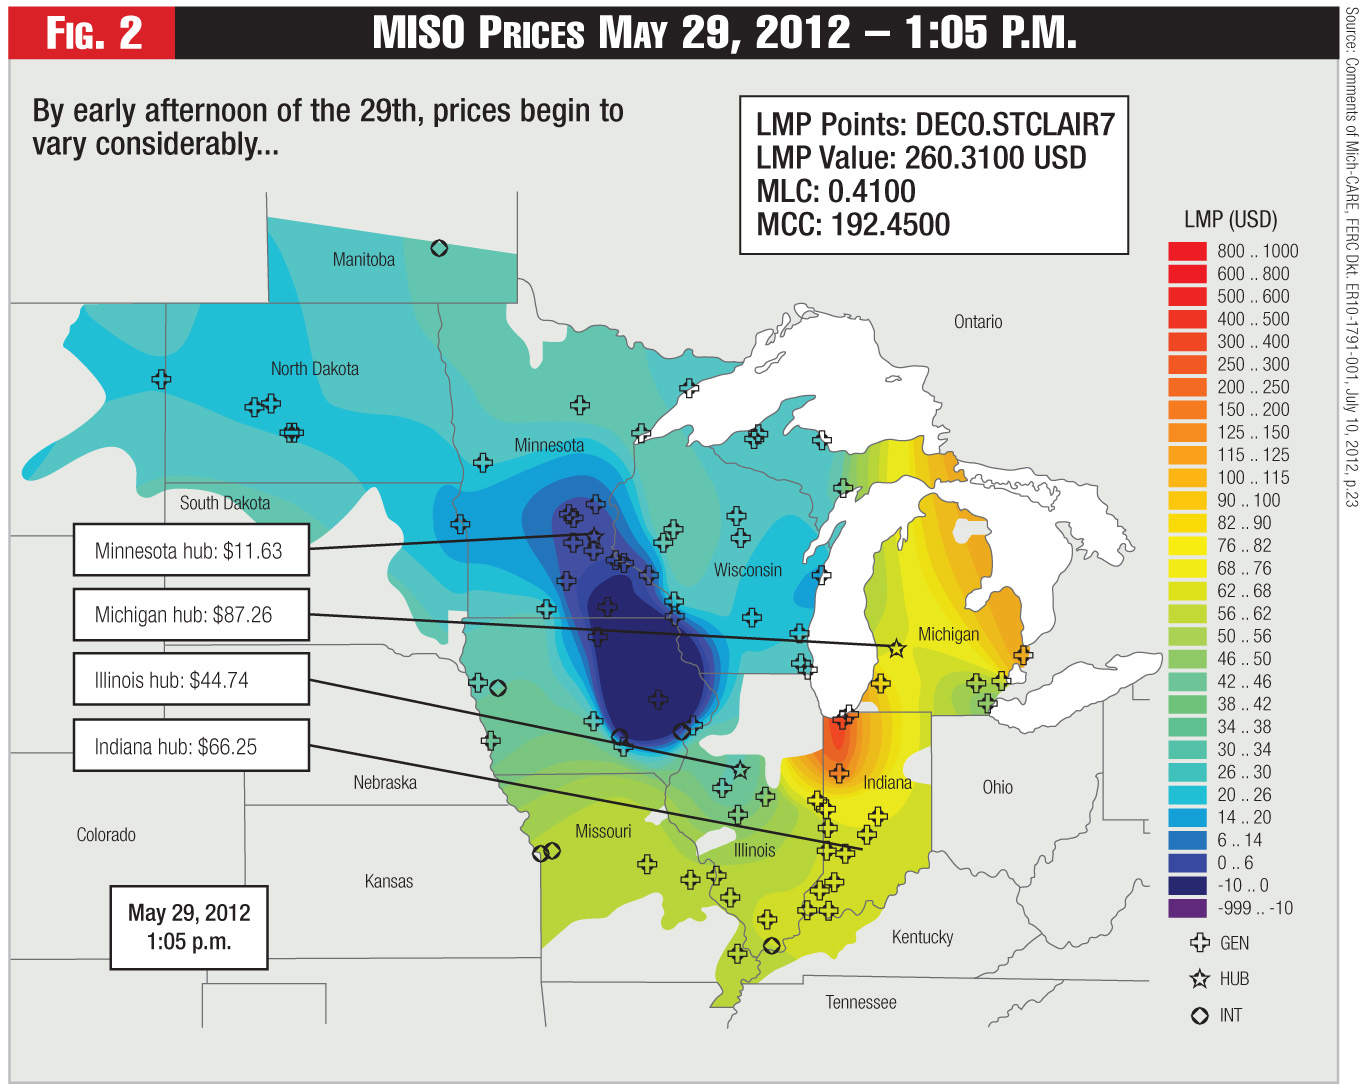 Figure 2 - MISO Prices May 29, 2012 – 1:05 P.M.